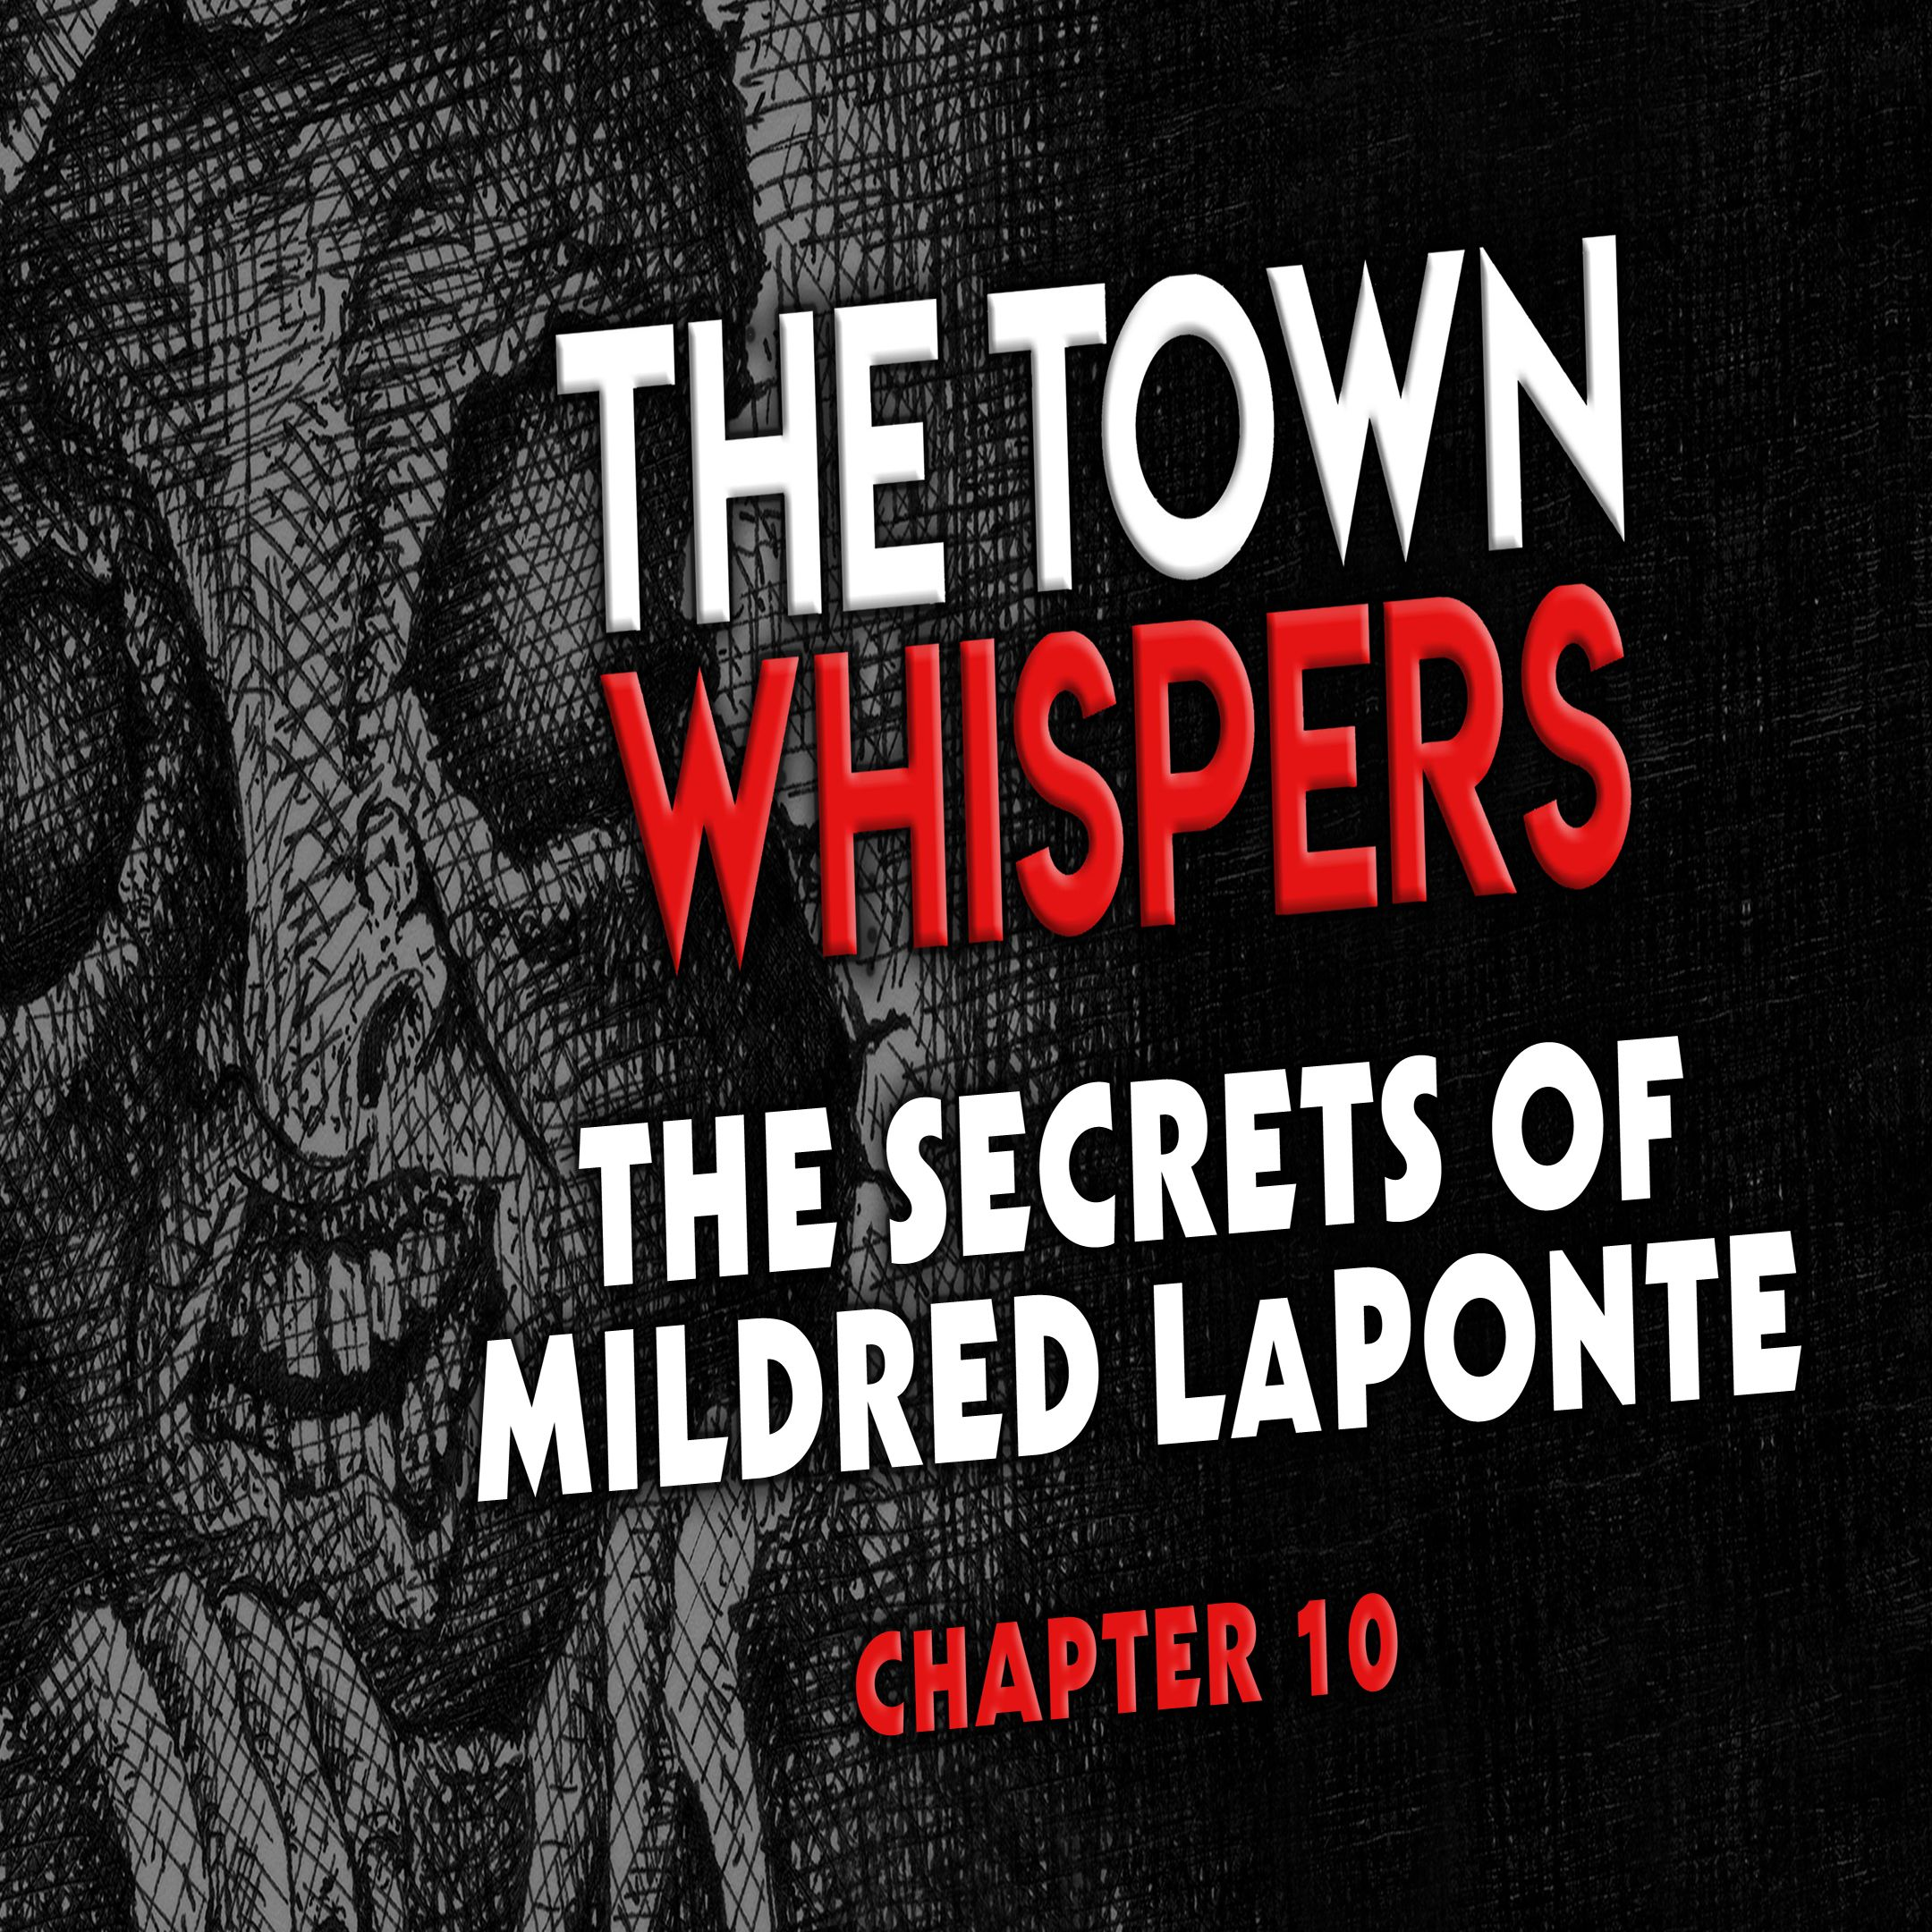 Chapter 10: The Secrets of Mildred LaPonte